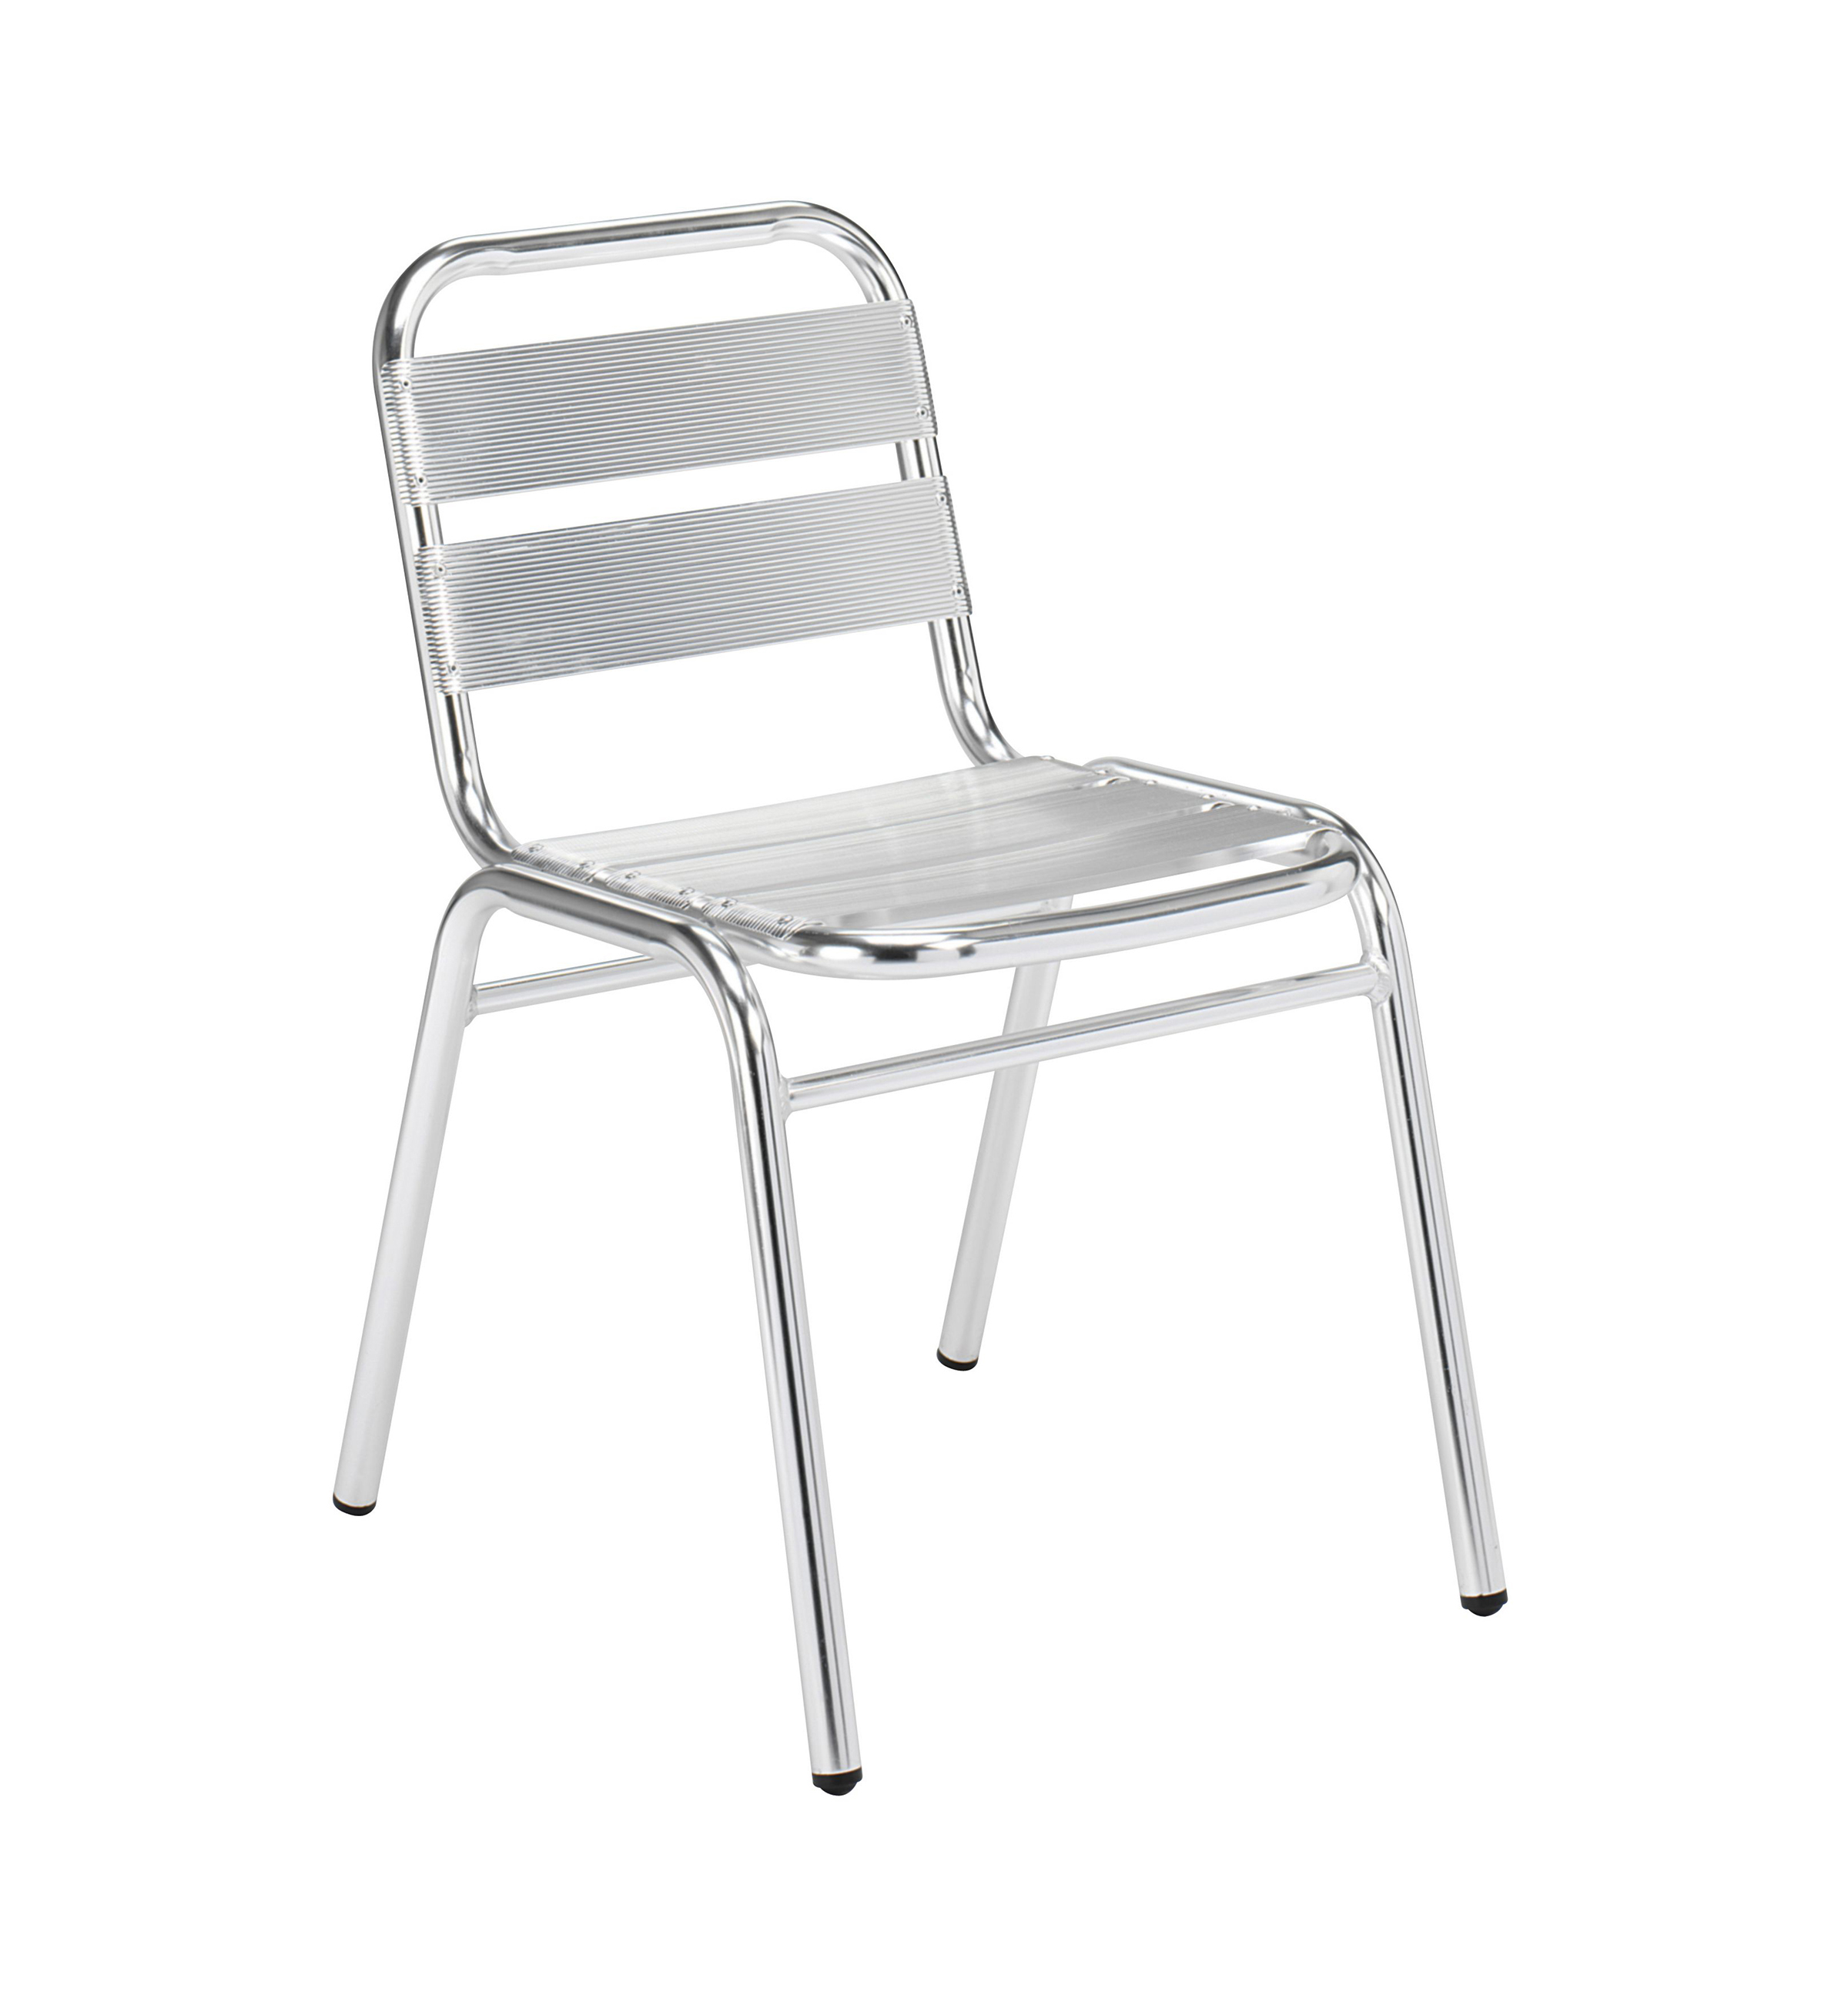 Aluminium Outdoor Chair without Arms